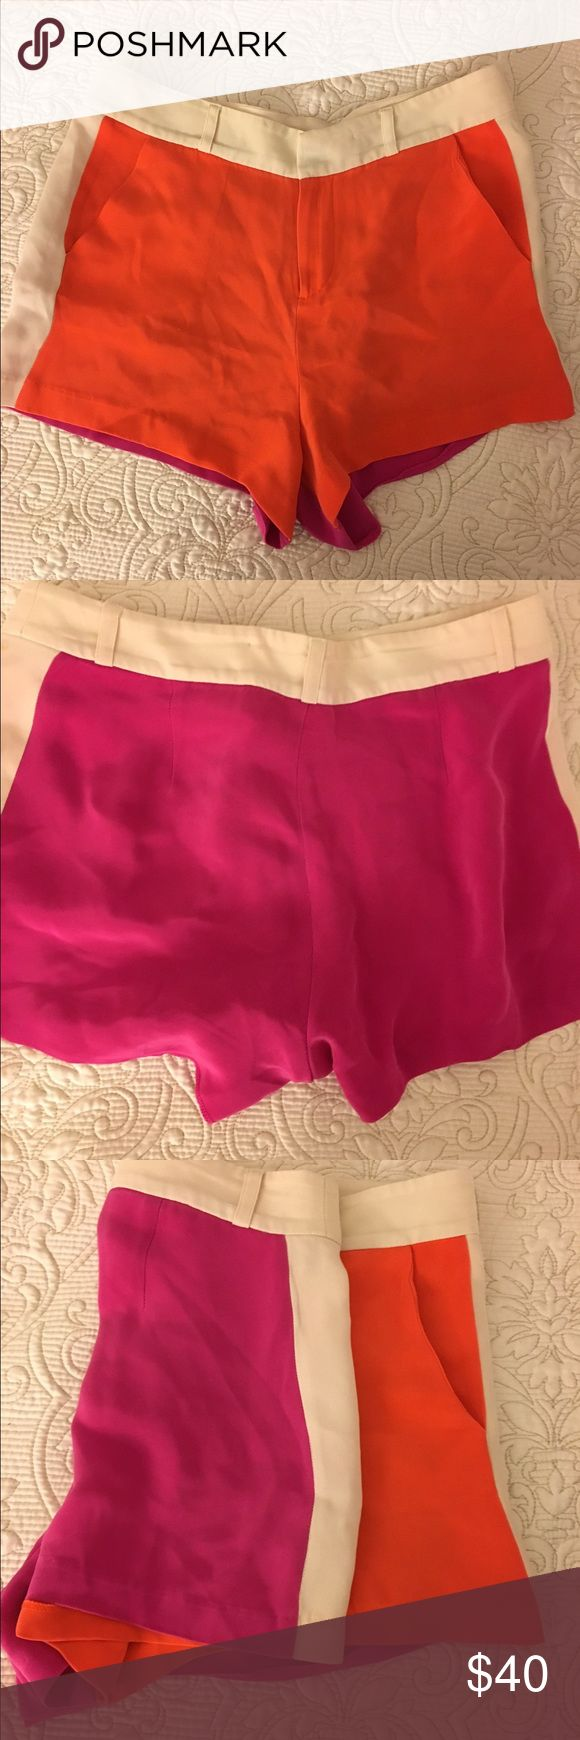 Parker Silk 2 color shorts Super cute Parker shorts in silk. The front is bright orange and the back is pink. I got so many compliments on these. They are slightly high wasted so look amazing with crop tops! Parker Shorts